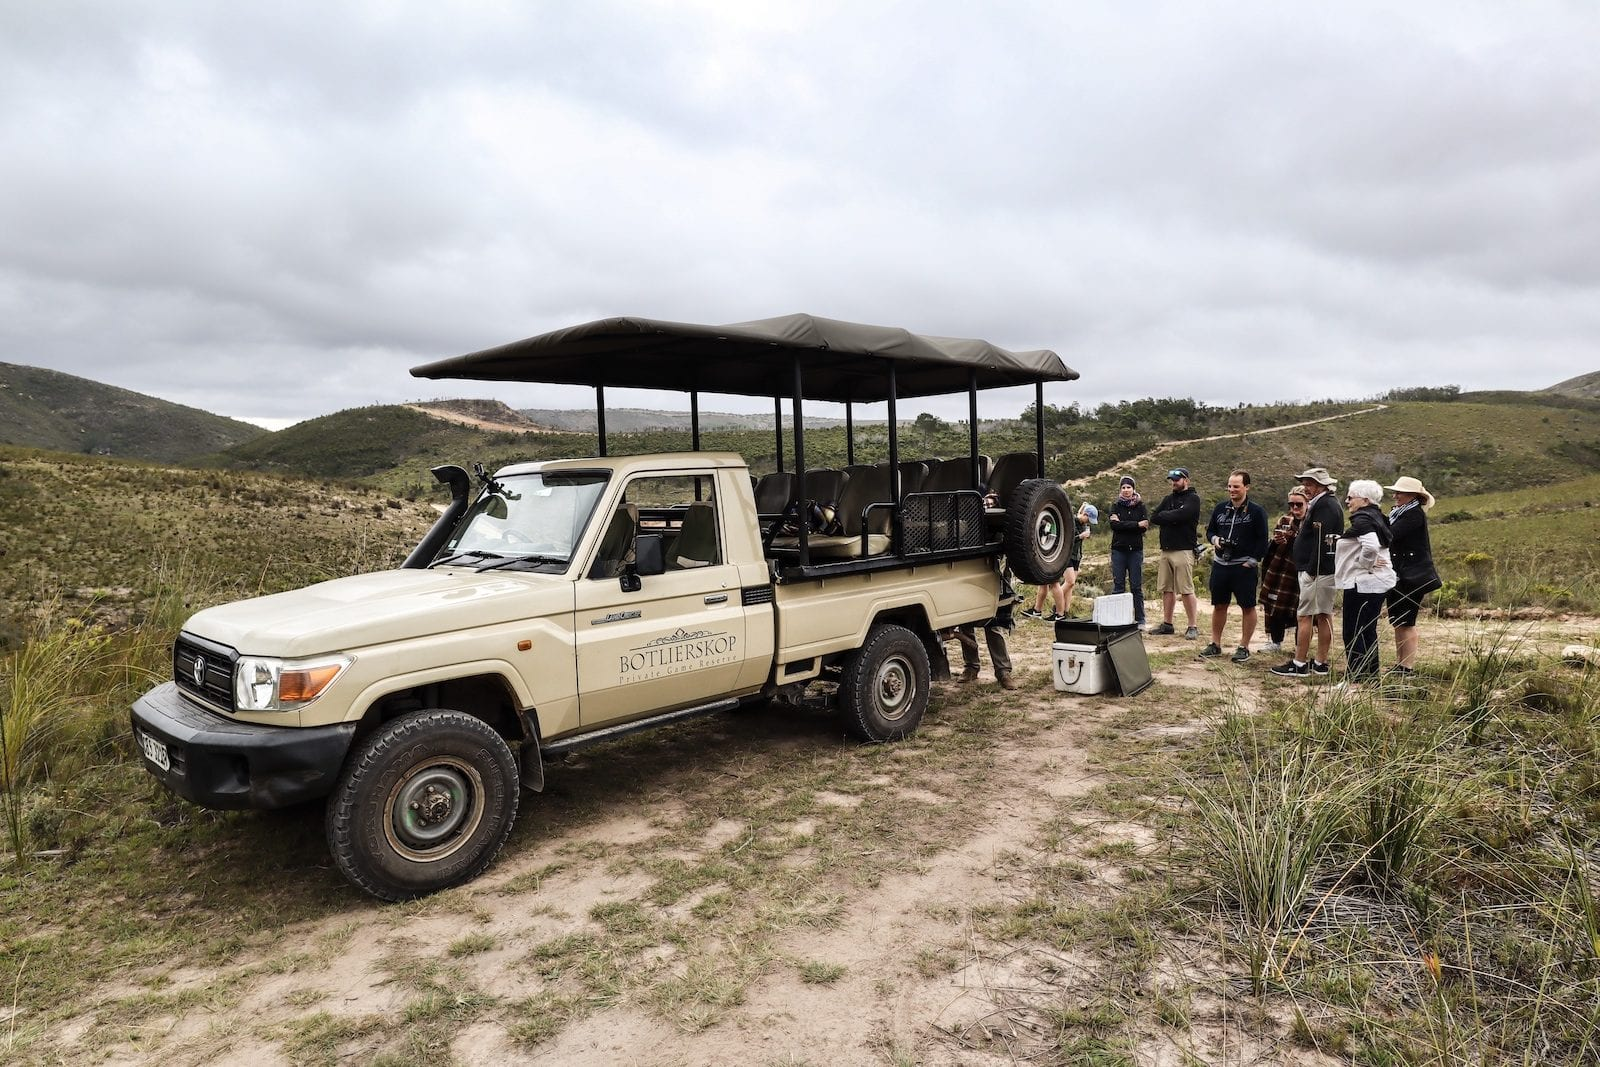 Our safari team at Botlierskop Private Game Reserve near Cape Town, South Africa